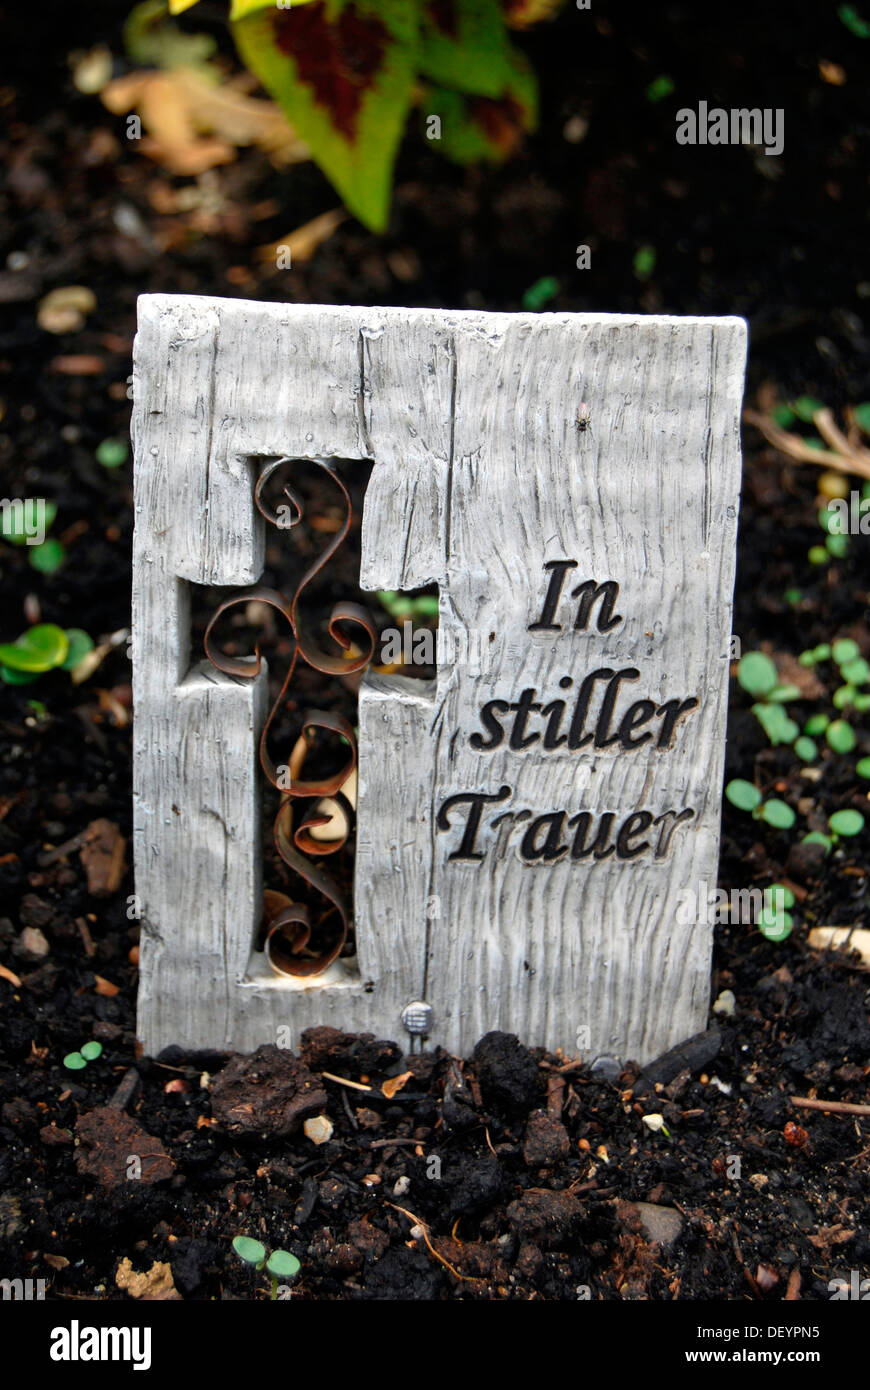 Wooden boad with text In stiller Trauer or in silent mourning, cross, grave, cemetery - Stock Image